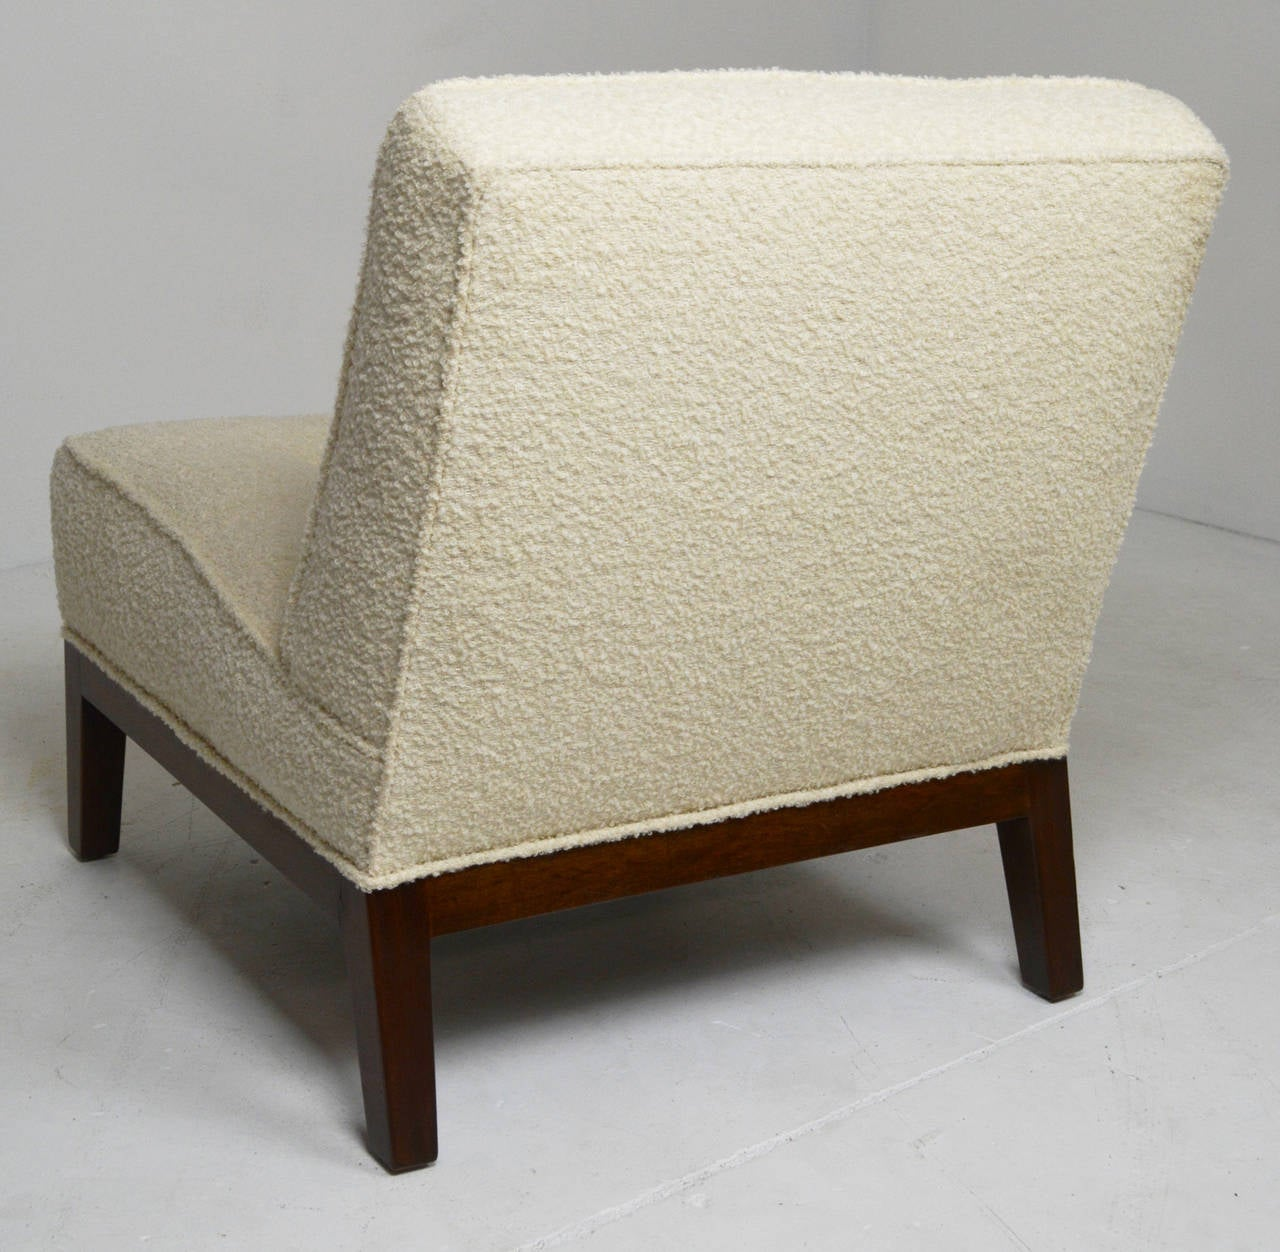 Dunbar Slipper Chair In Good Condition For Sale In Palm Springs, CA